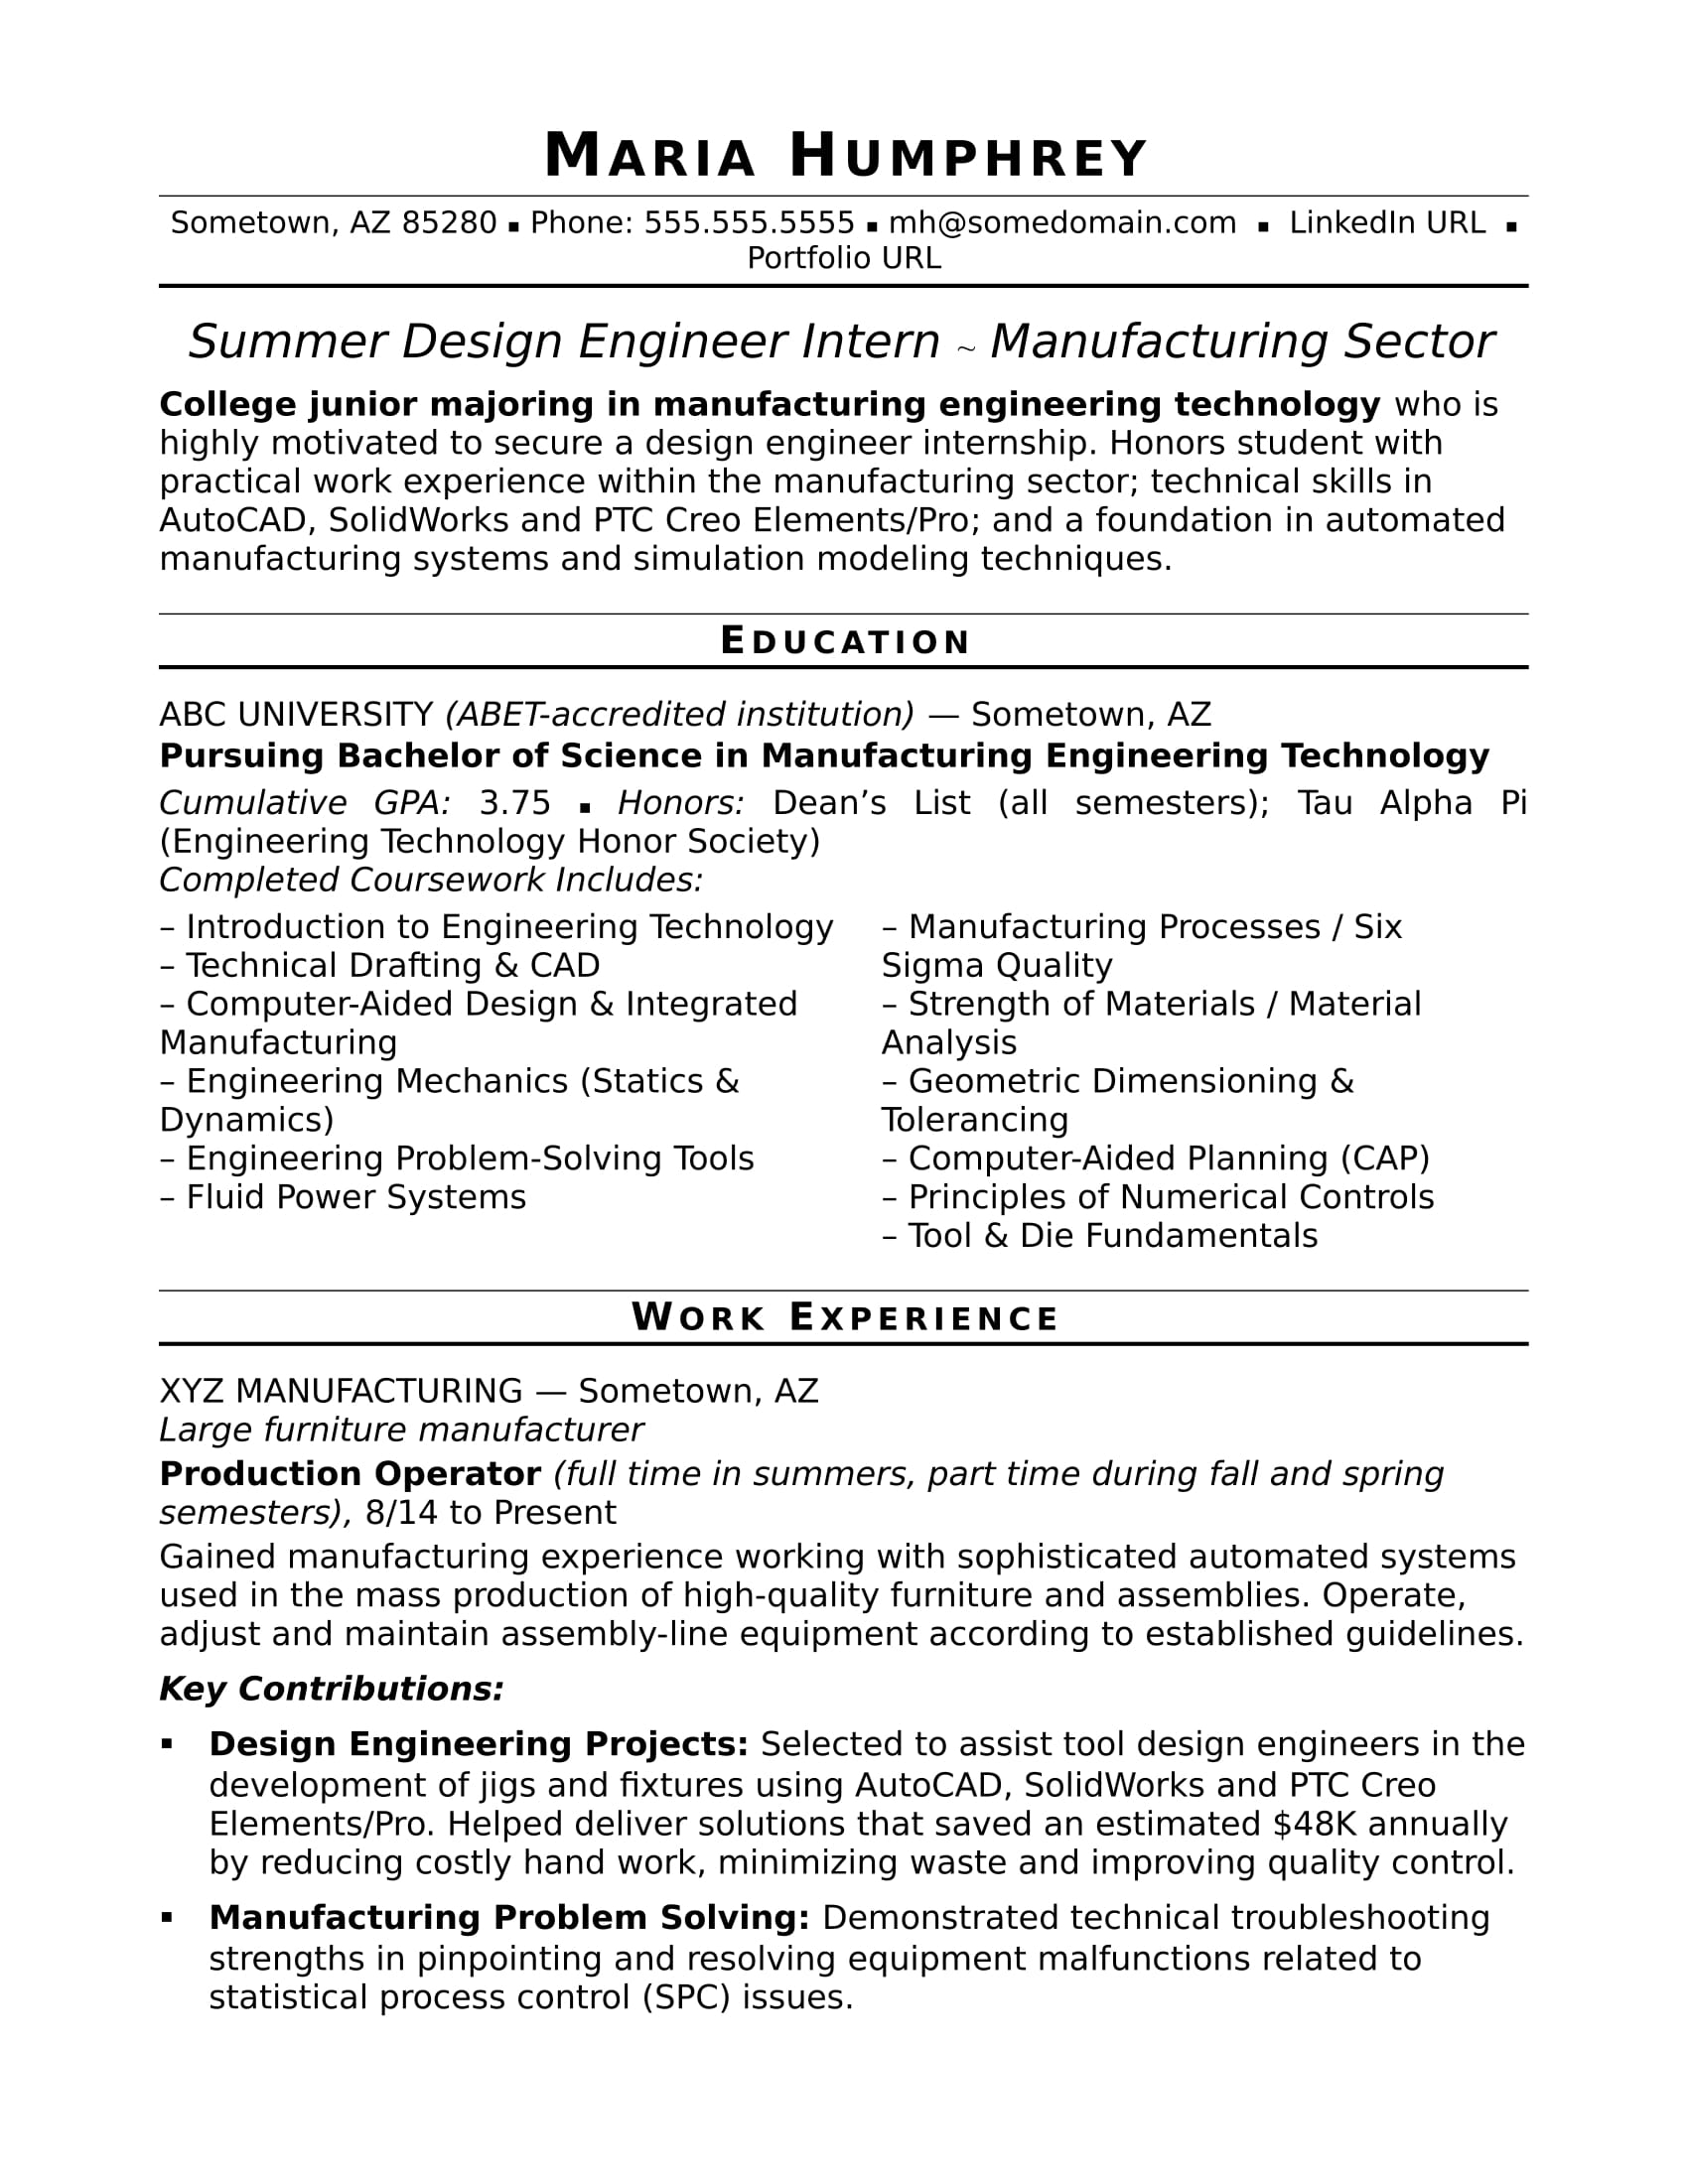 Resume Format For Design Engineer In Mechanical Sample Resume For An Entry Level Design Engineer Monster